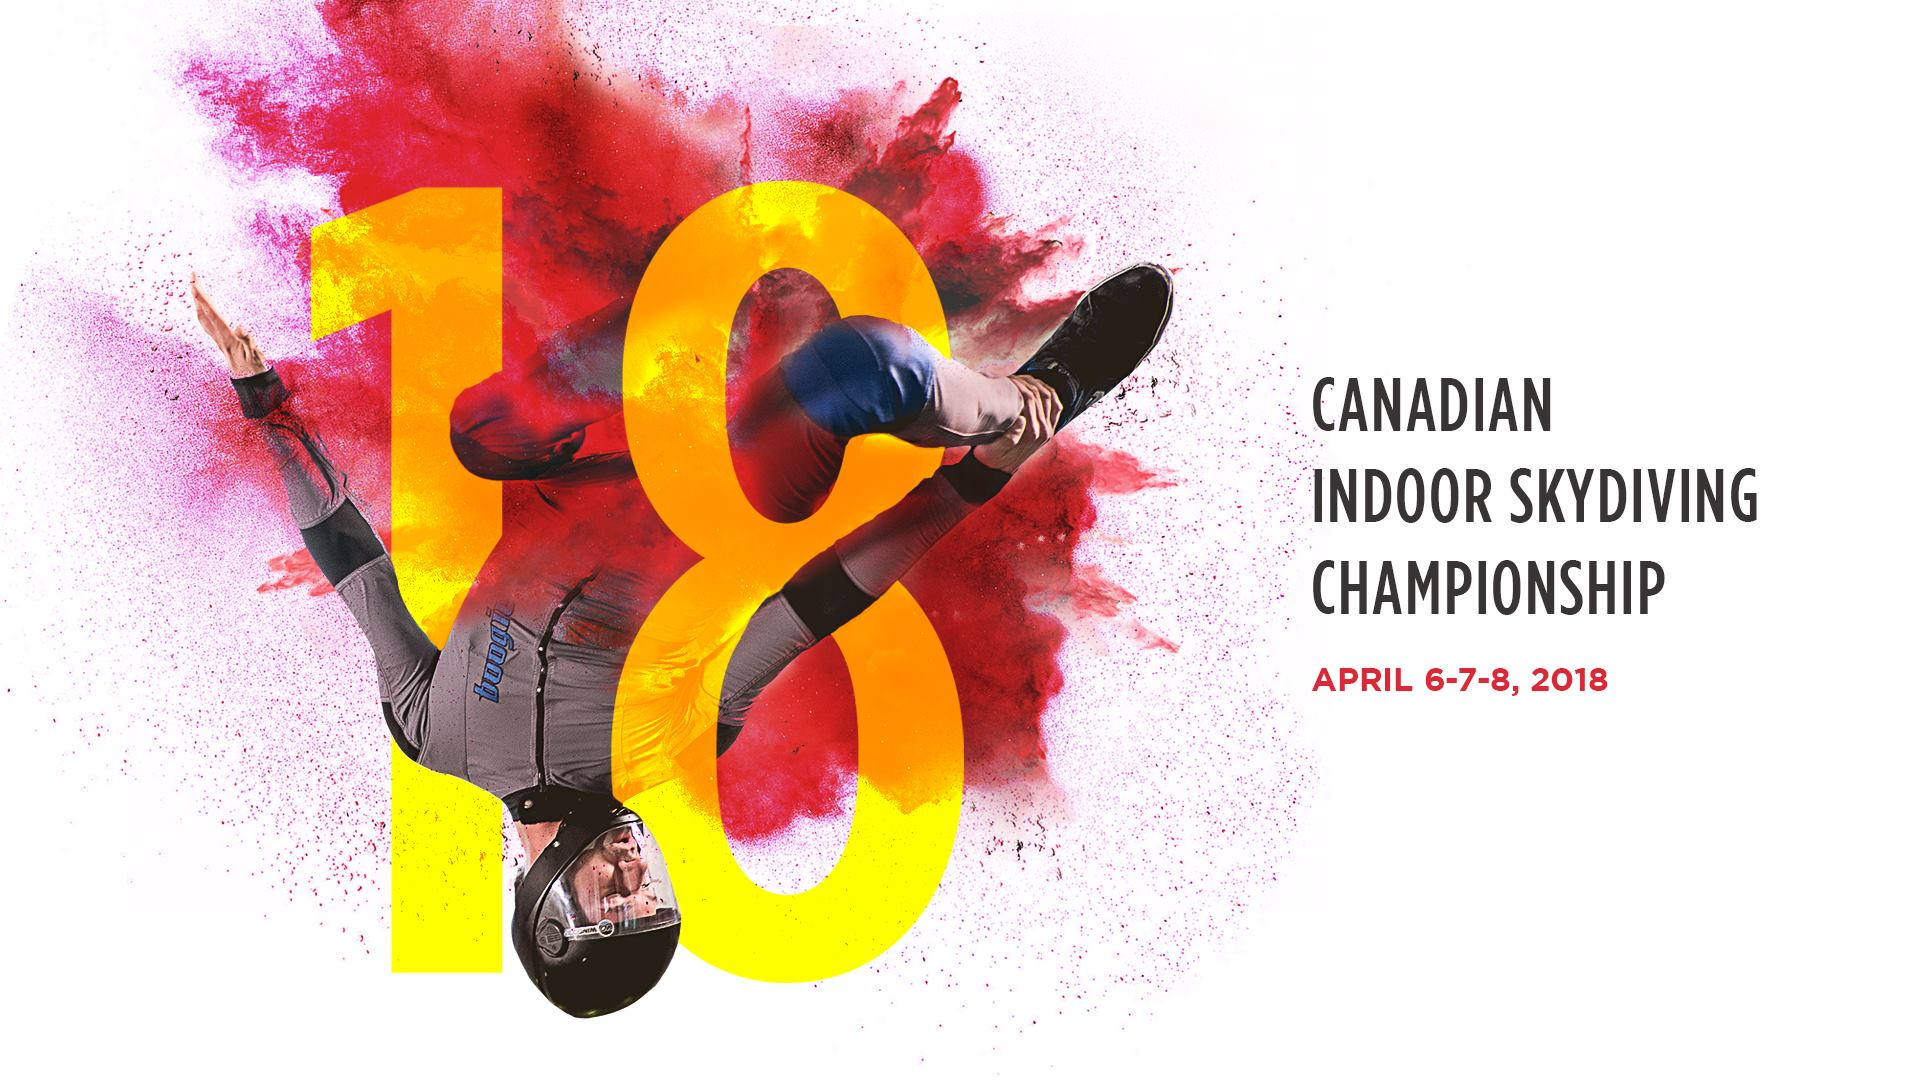 2018 Canadian Indoor Skydiving Champ Flyer